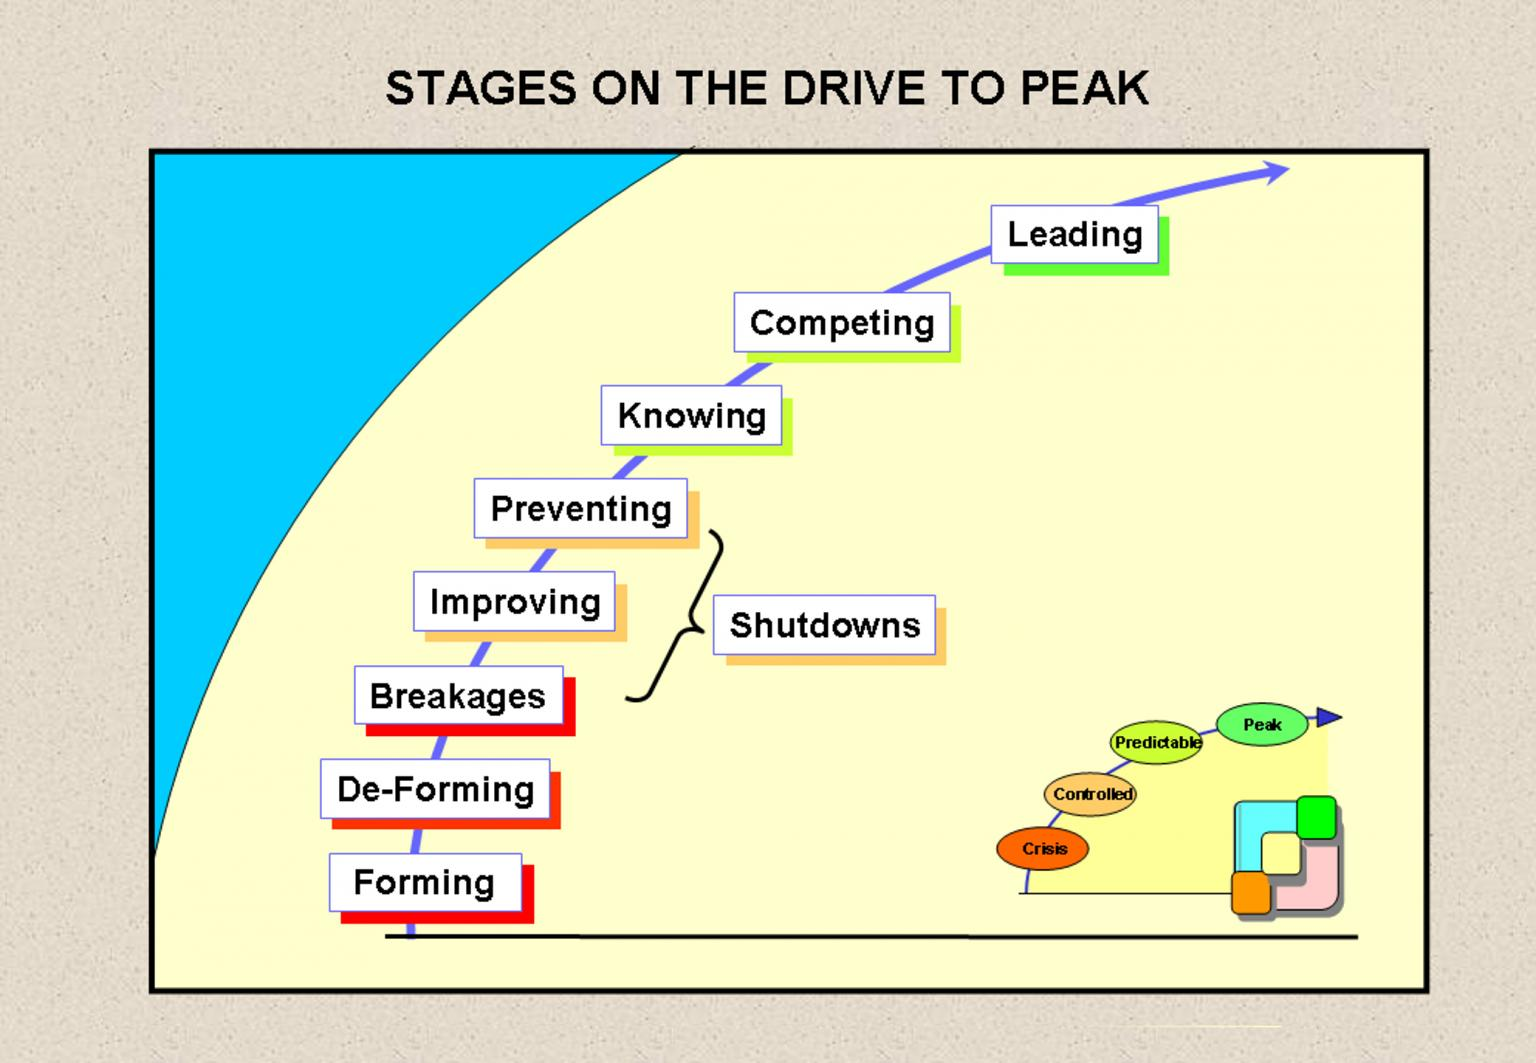 Fig. 2. Stages on the drive to peak